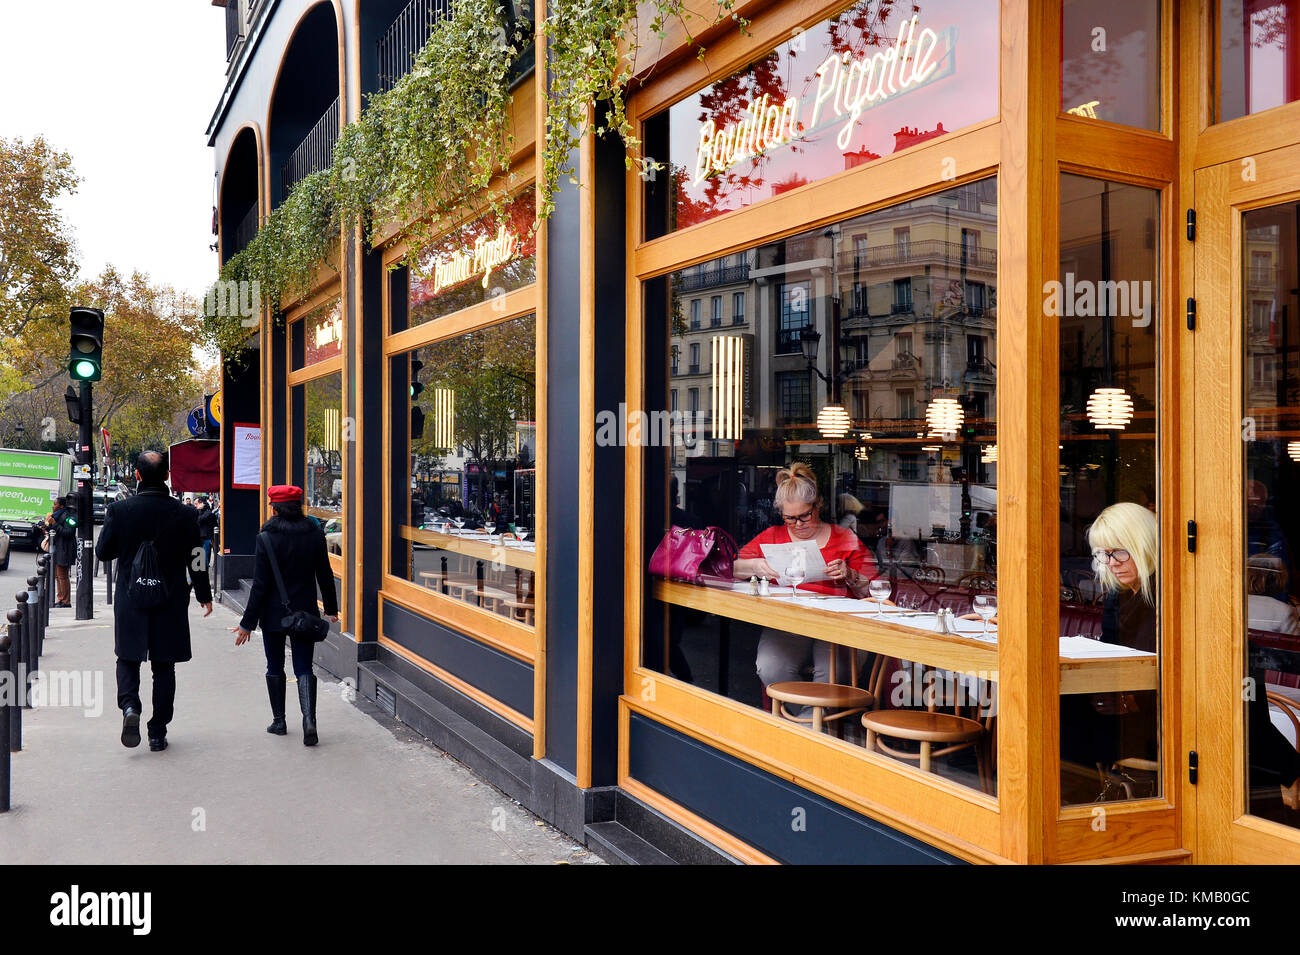 French brasserie stock photos french brasserie stock for Restaurant miroir paris 18